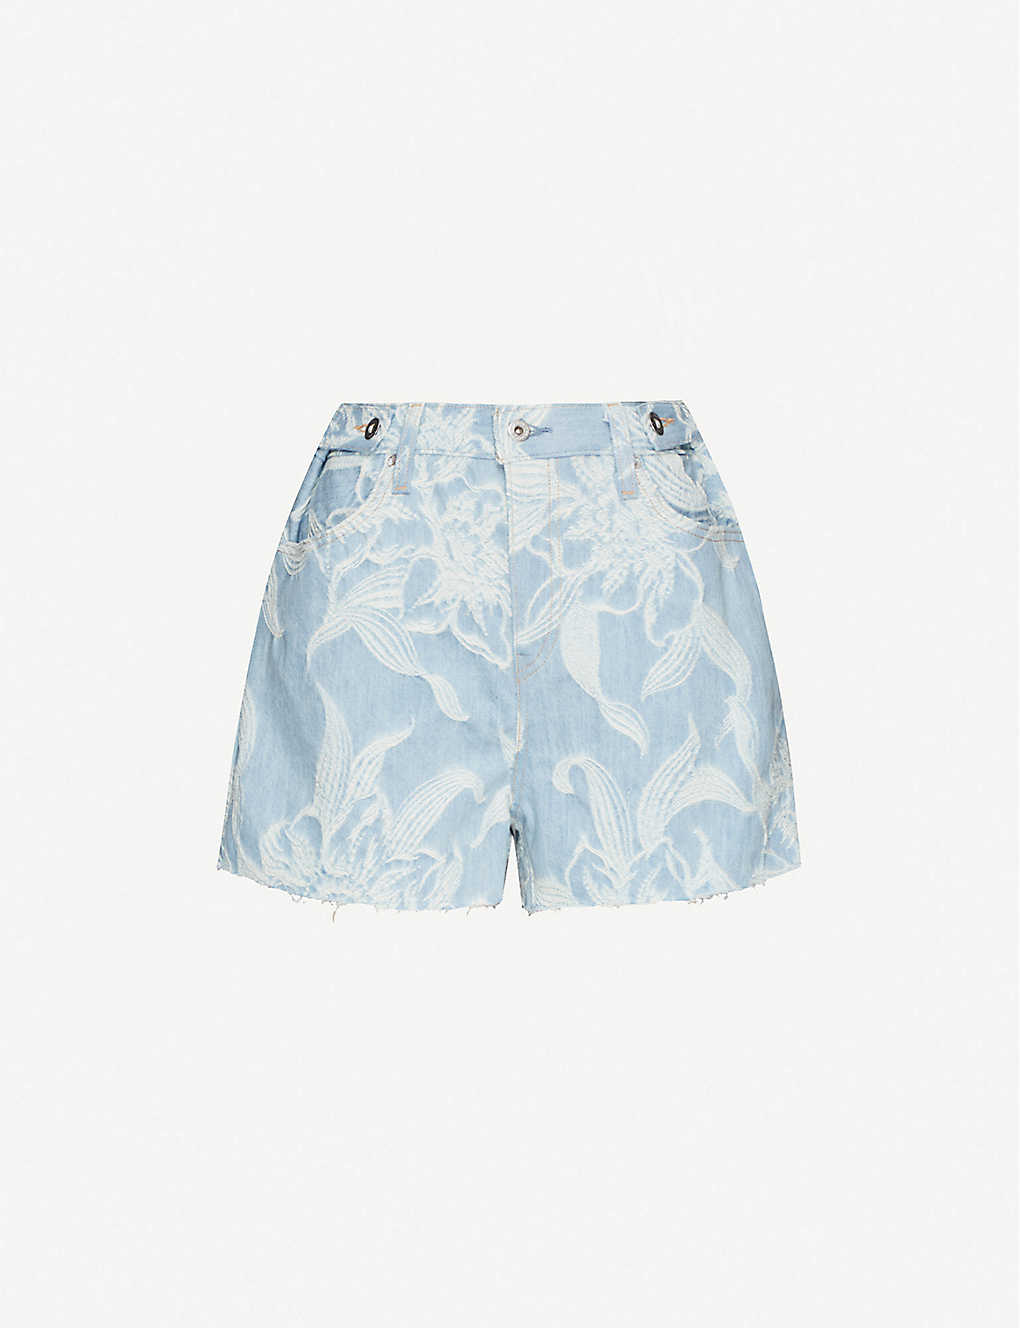 LEVIS MADE & CRAFTED: Made & Crafted Botanical print denim shorts